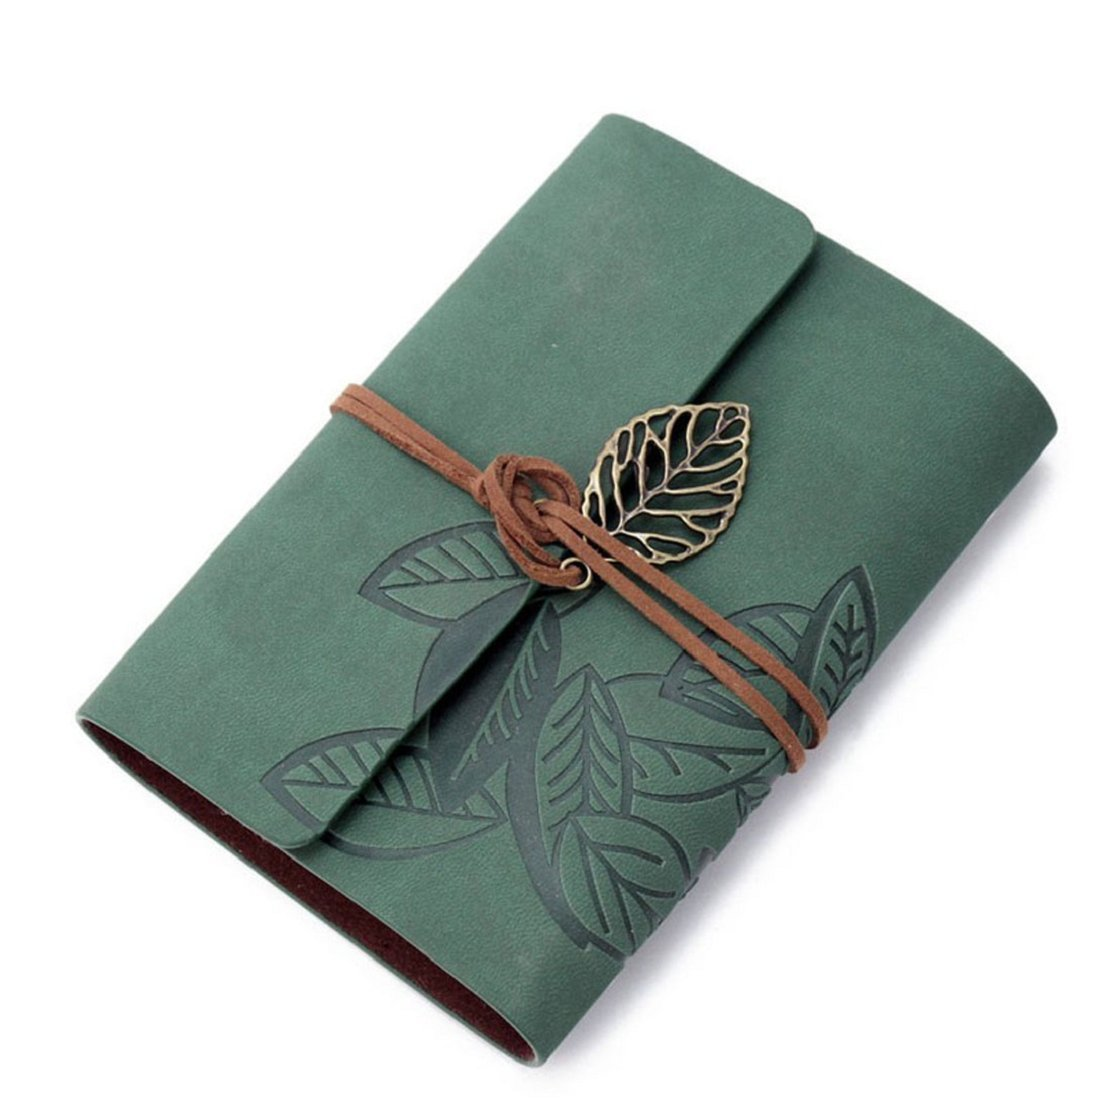 Towallmark(TM)Vintage Leaf Leather Cover Loose Leaf Blank Notebook Journal Diary Gift (Green)